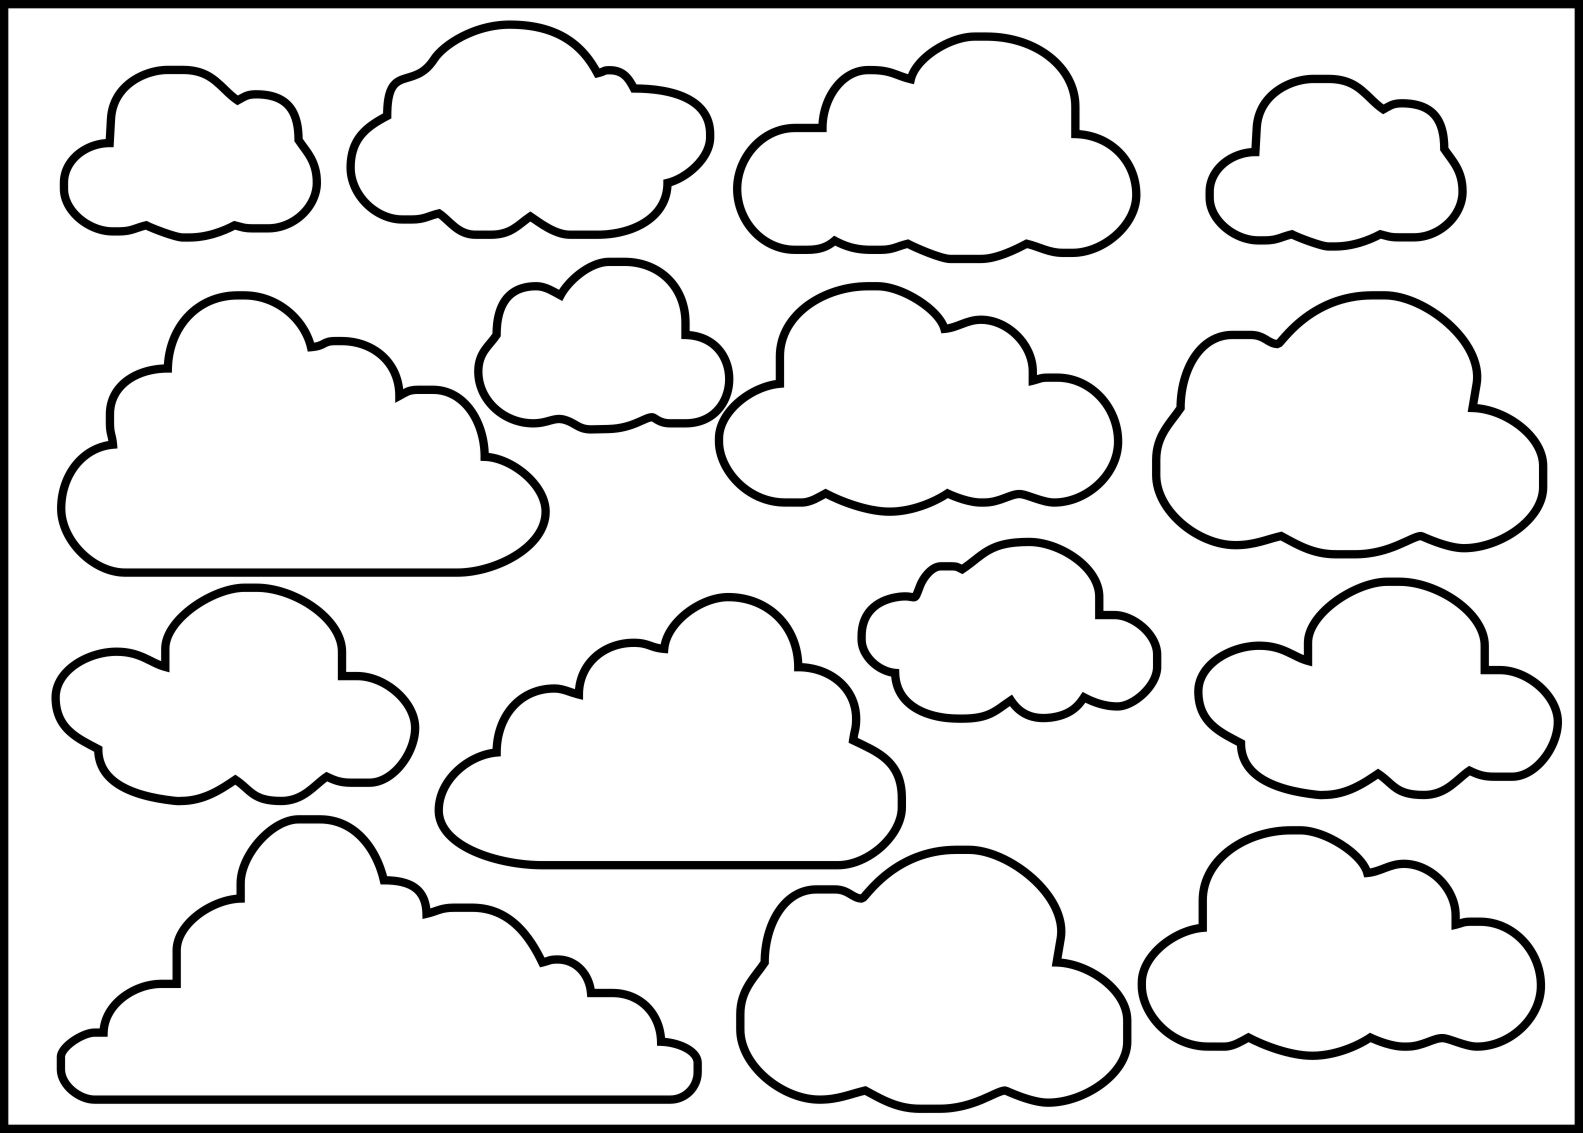 Line Art Clouds : Clouds by nina brackett stencil feltro